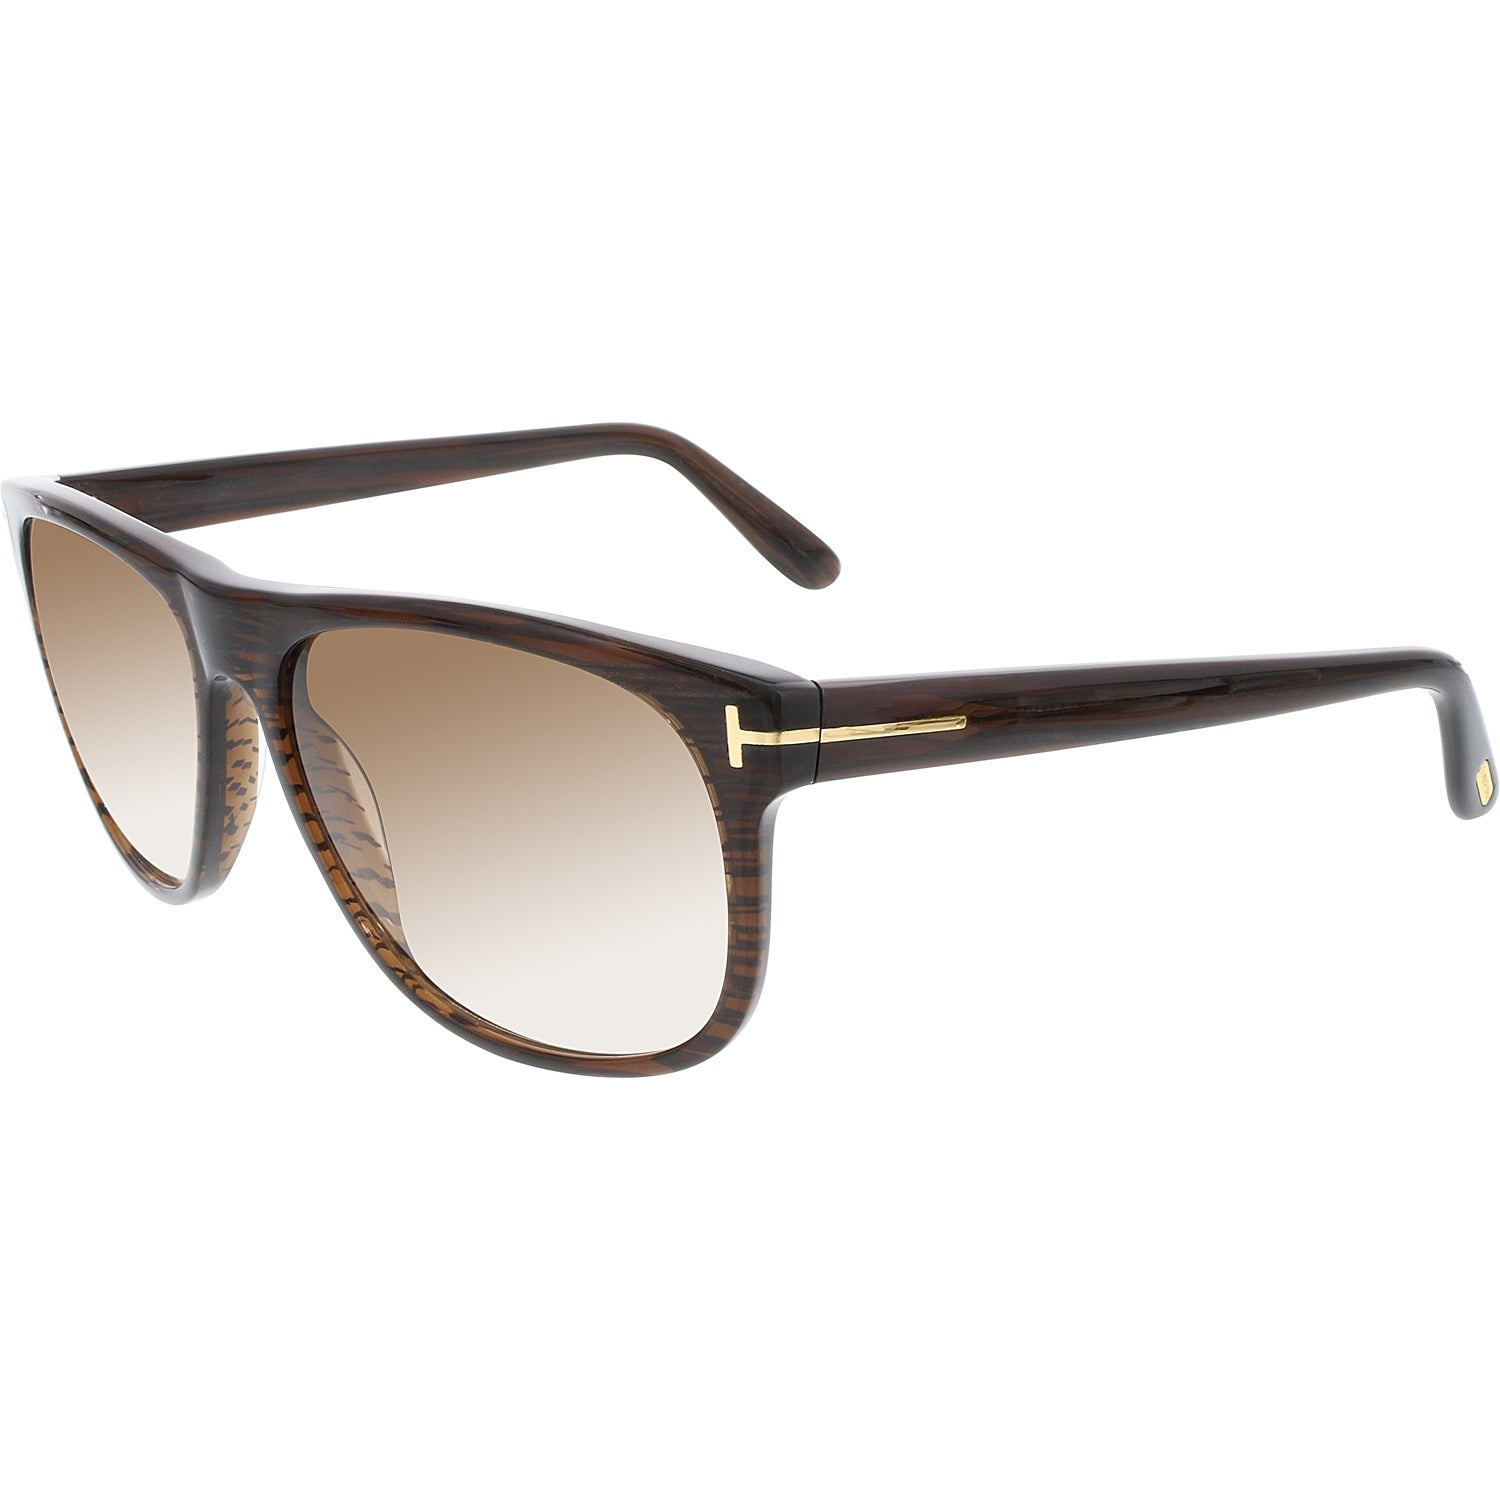 8bf52872c1 Shop Tom Ford Men s Olivier FT0236-50P-58 Brown Square Sunglasses - Free  Shipping Today - Overstock.com - 18901406